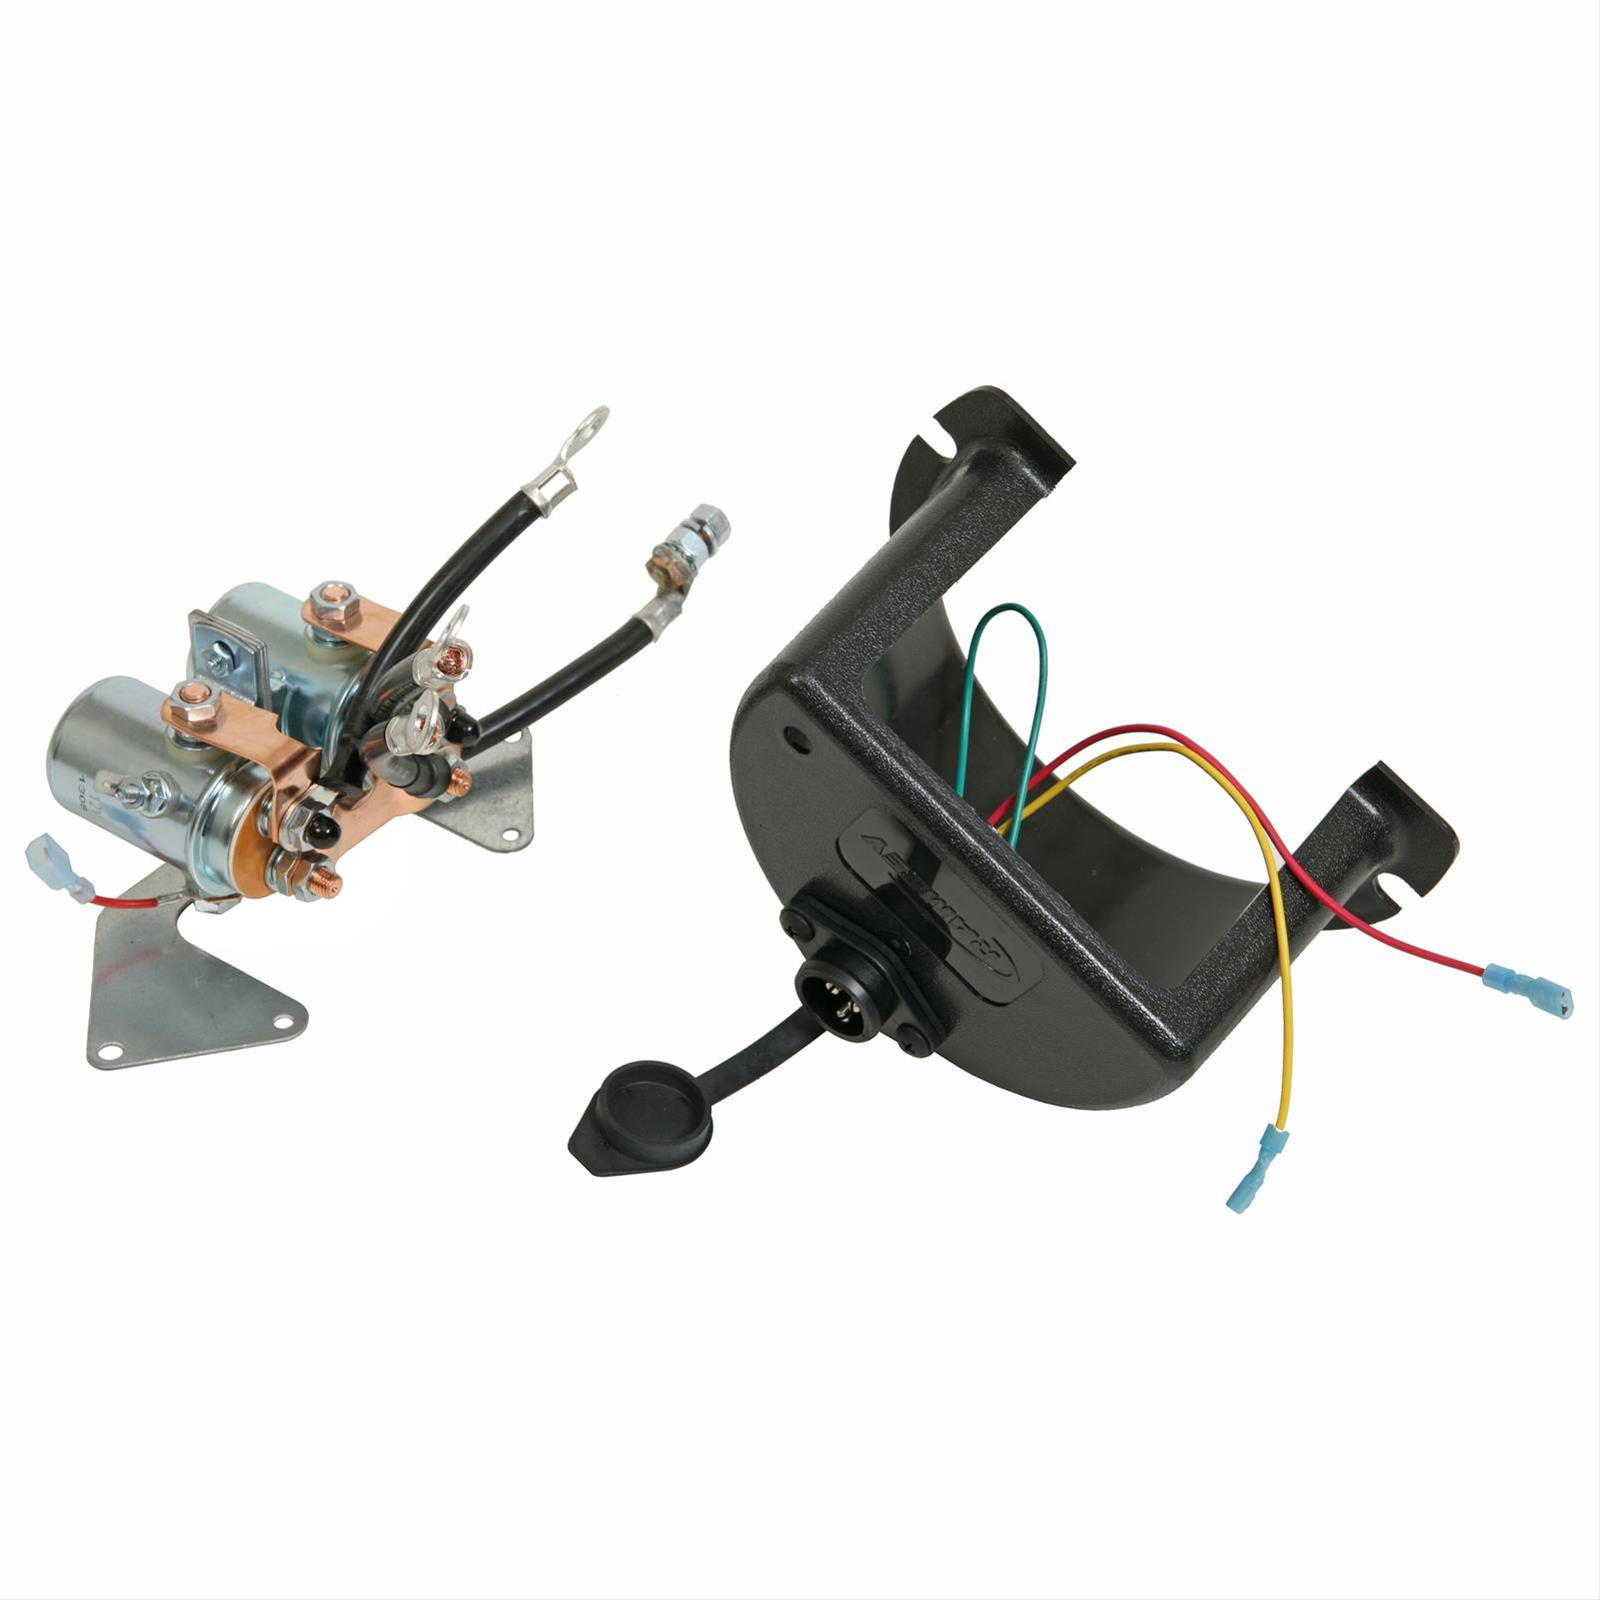 ramsey winch solenoid replacement 12 v re 8000 re 12000 each ebay Winch Motor Wiring Diagram ramsey winch solenoid replacement 12 v re 8000 re 12000 each